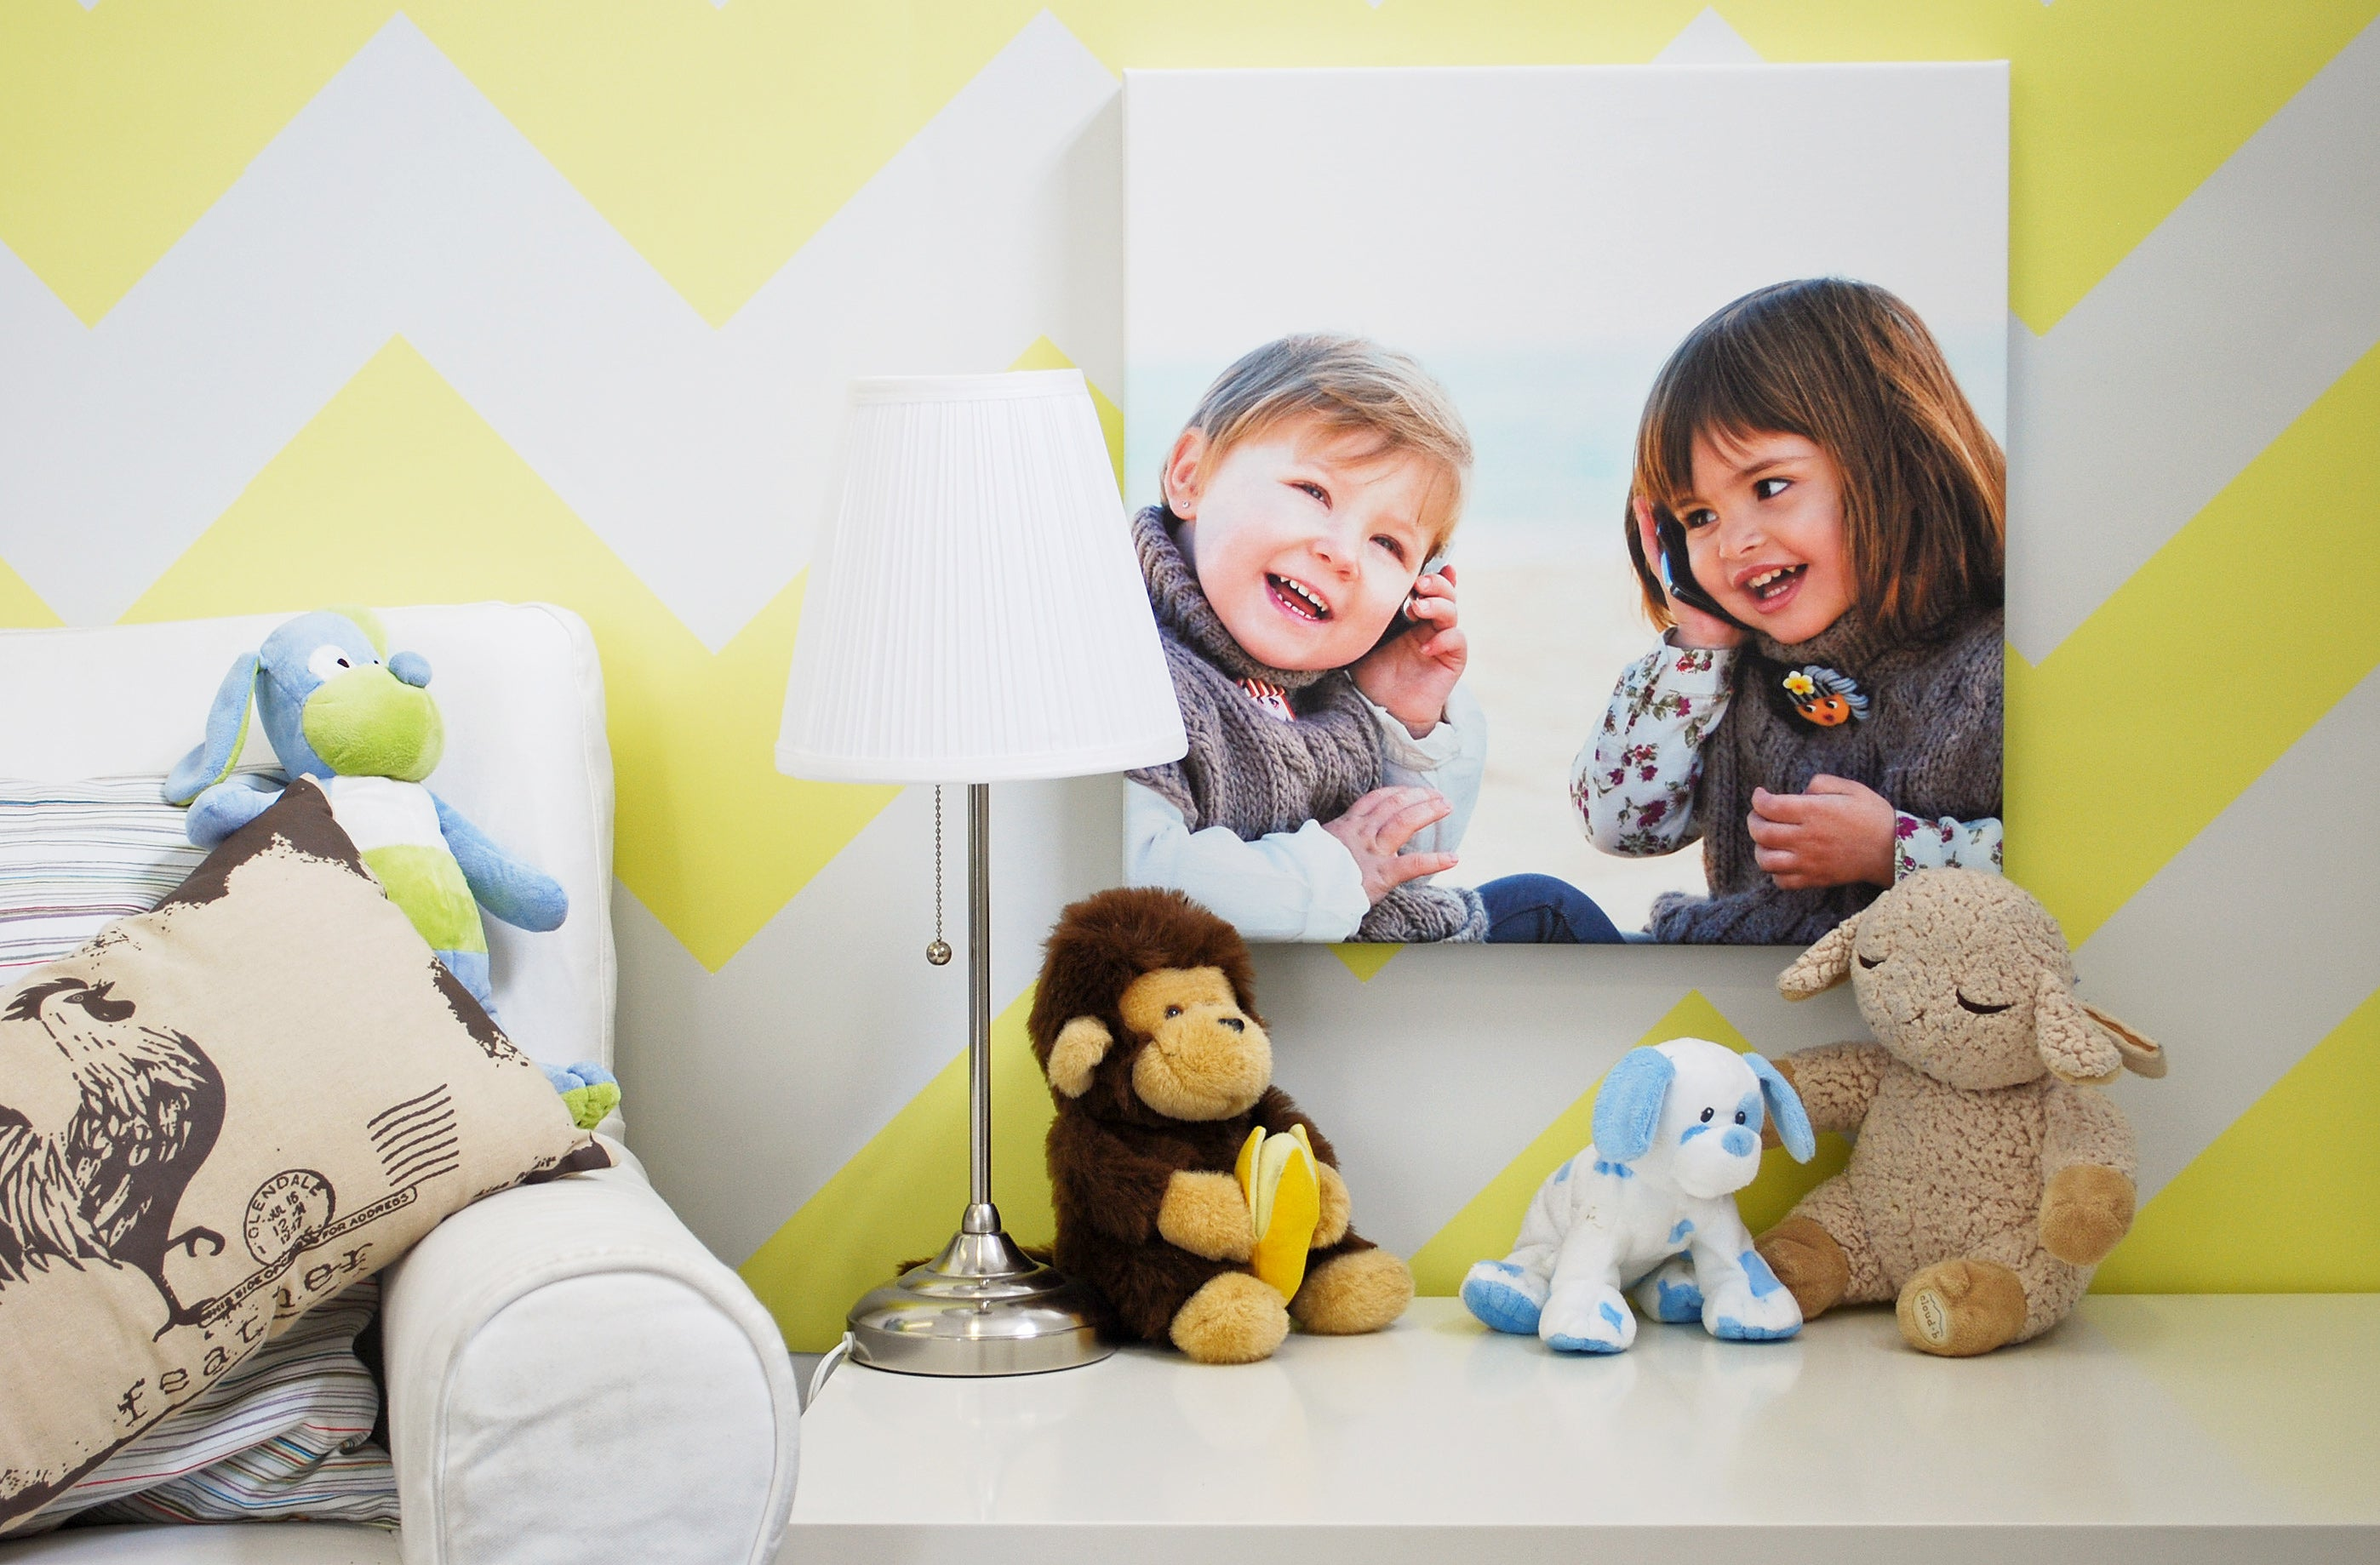 Photo of Kids Printed on Canvas and Displayed in Room